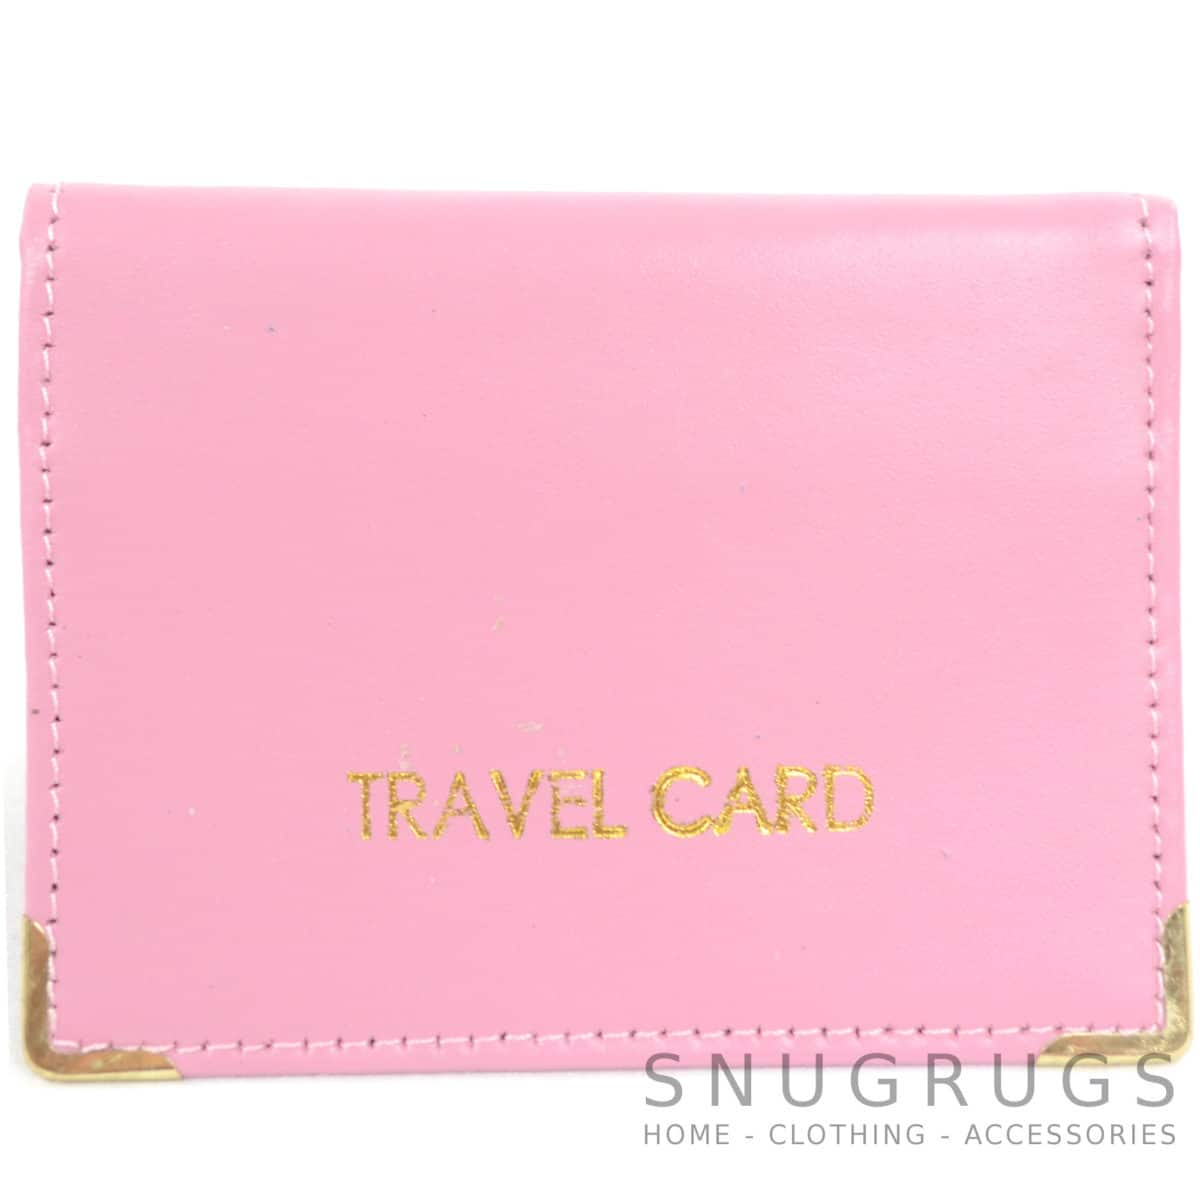 Leather Travel Card / ID / Credit Card Holder - Pink